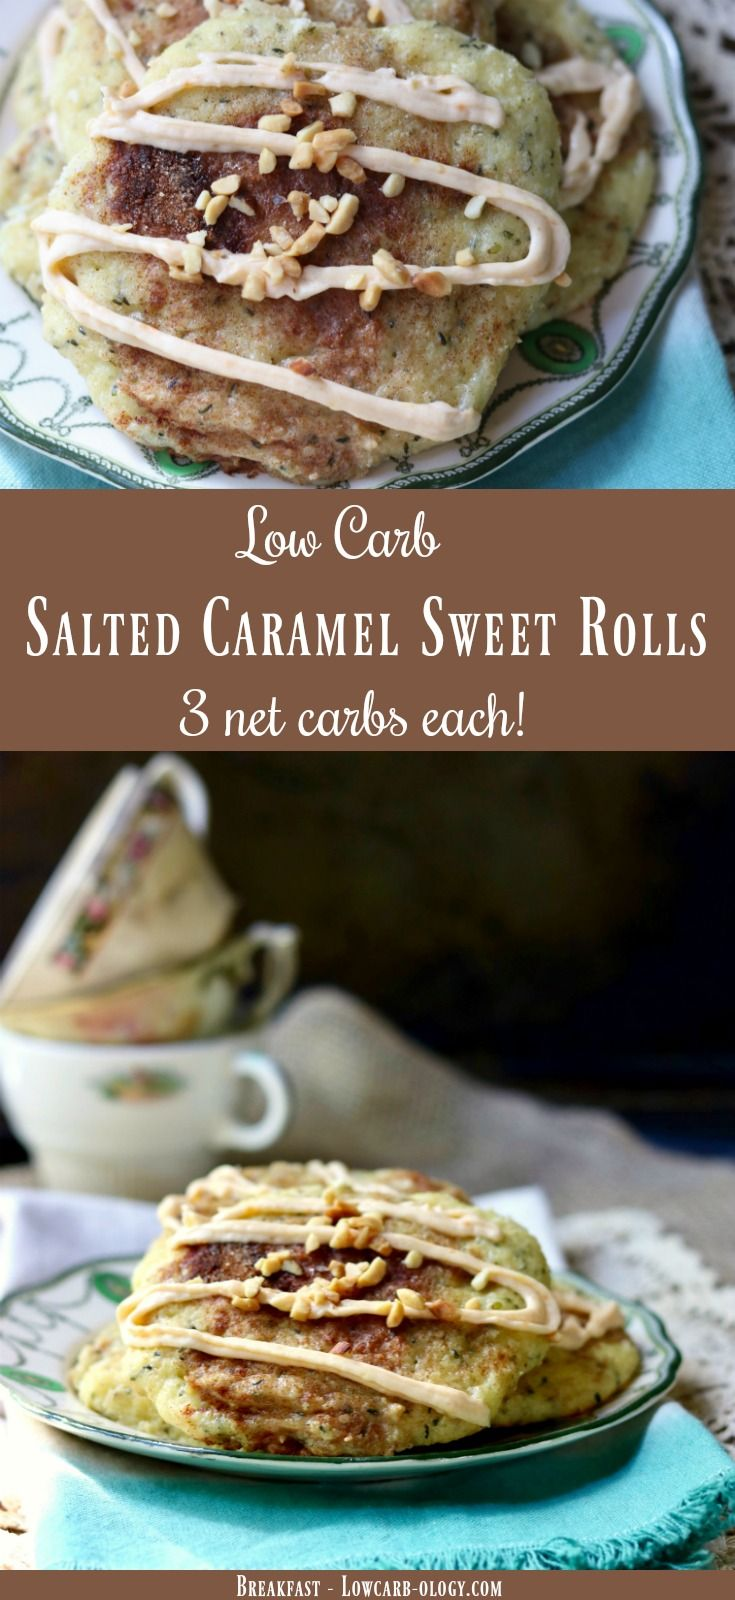 Salted caramel sweet rolls are a low carb treat for breakfast or brunch. Sweet, chewy dough, a cream cheese filling and a creamy salted caramel glaze  makes this recipe extra special. Just 3 net carbs! From Lowcarb-ology.com